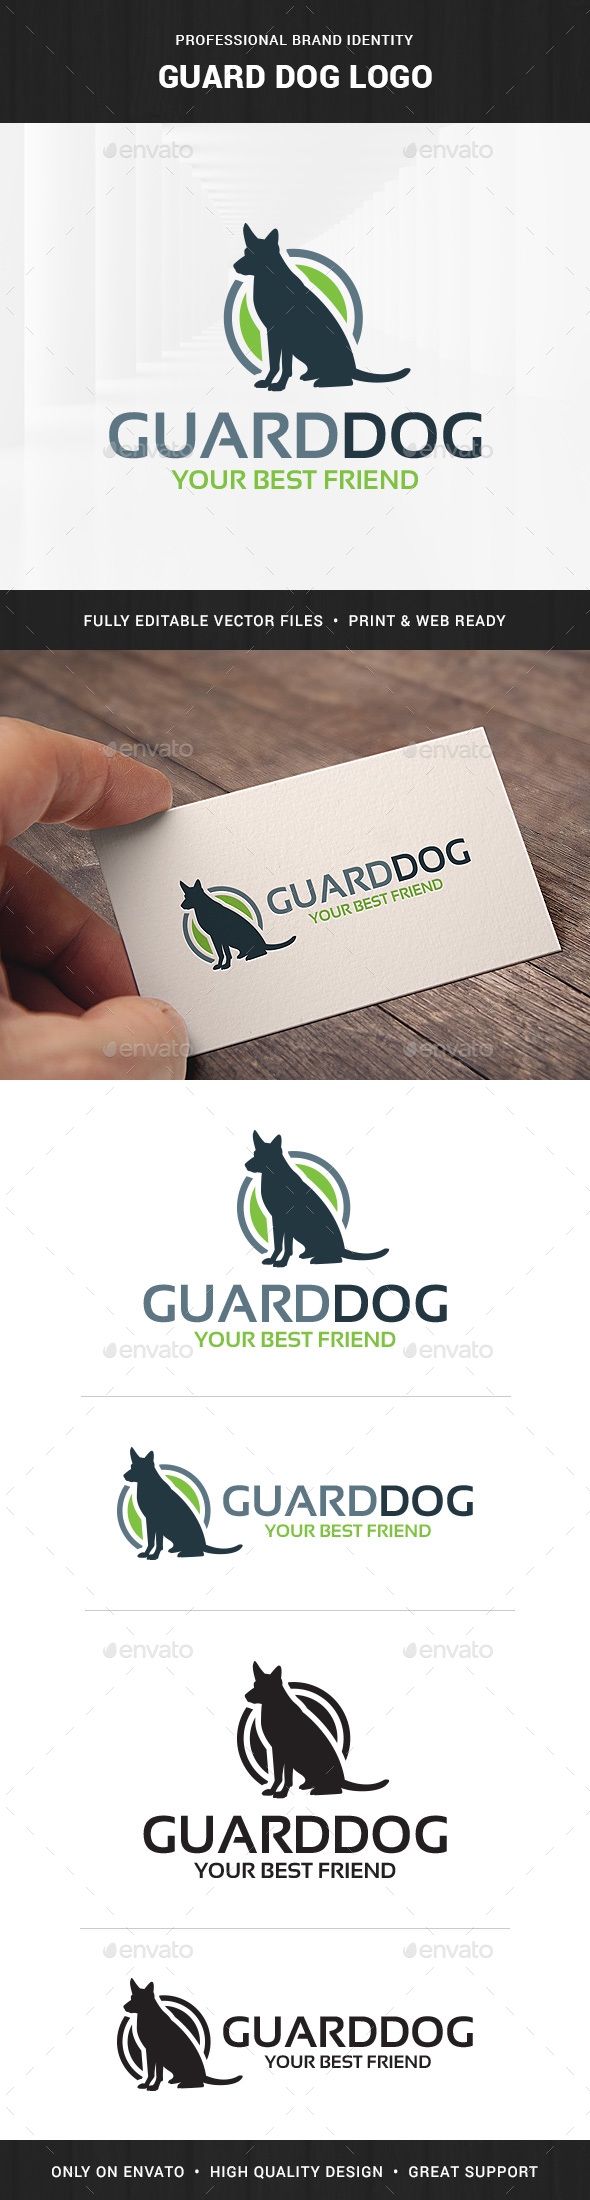 Guard Dog Logo Template